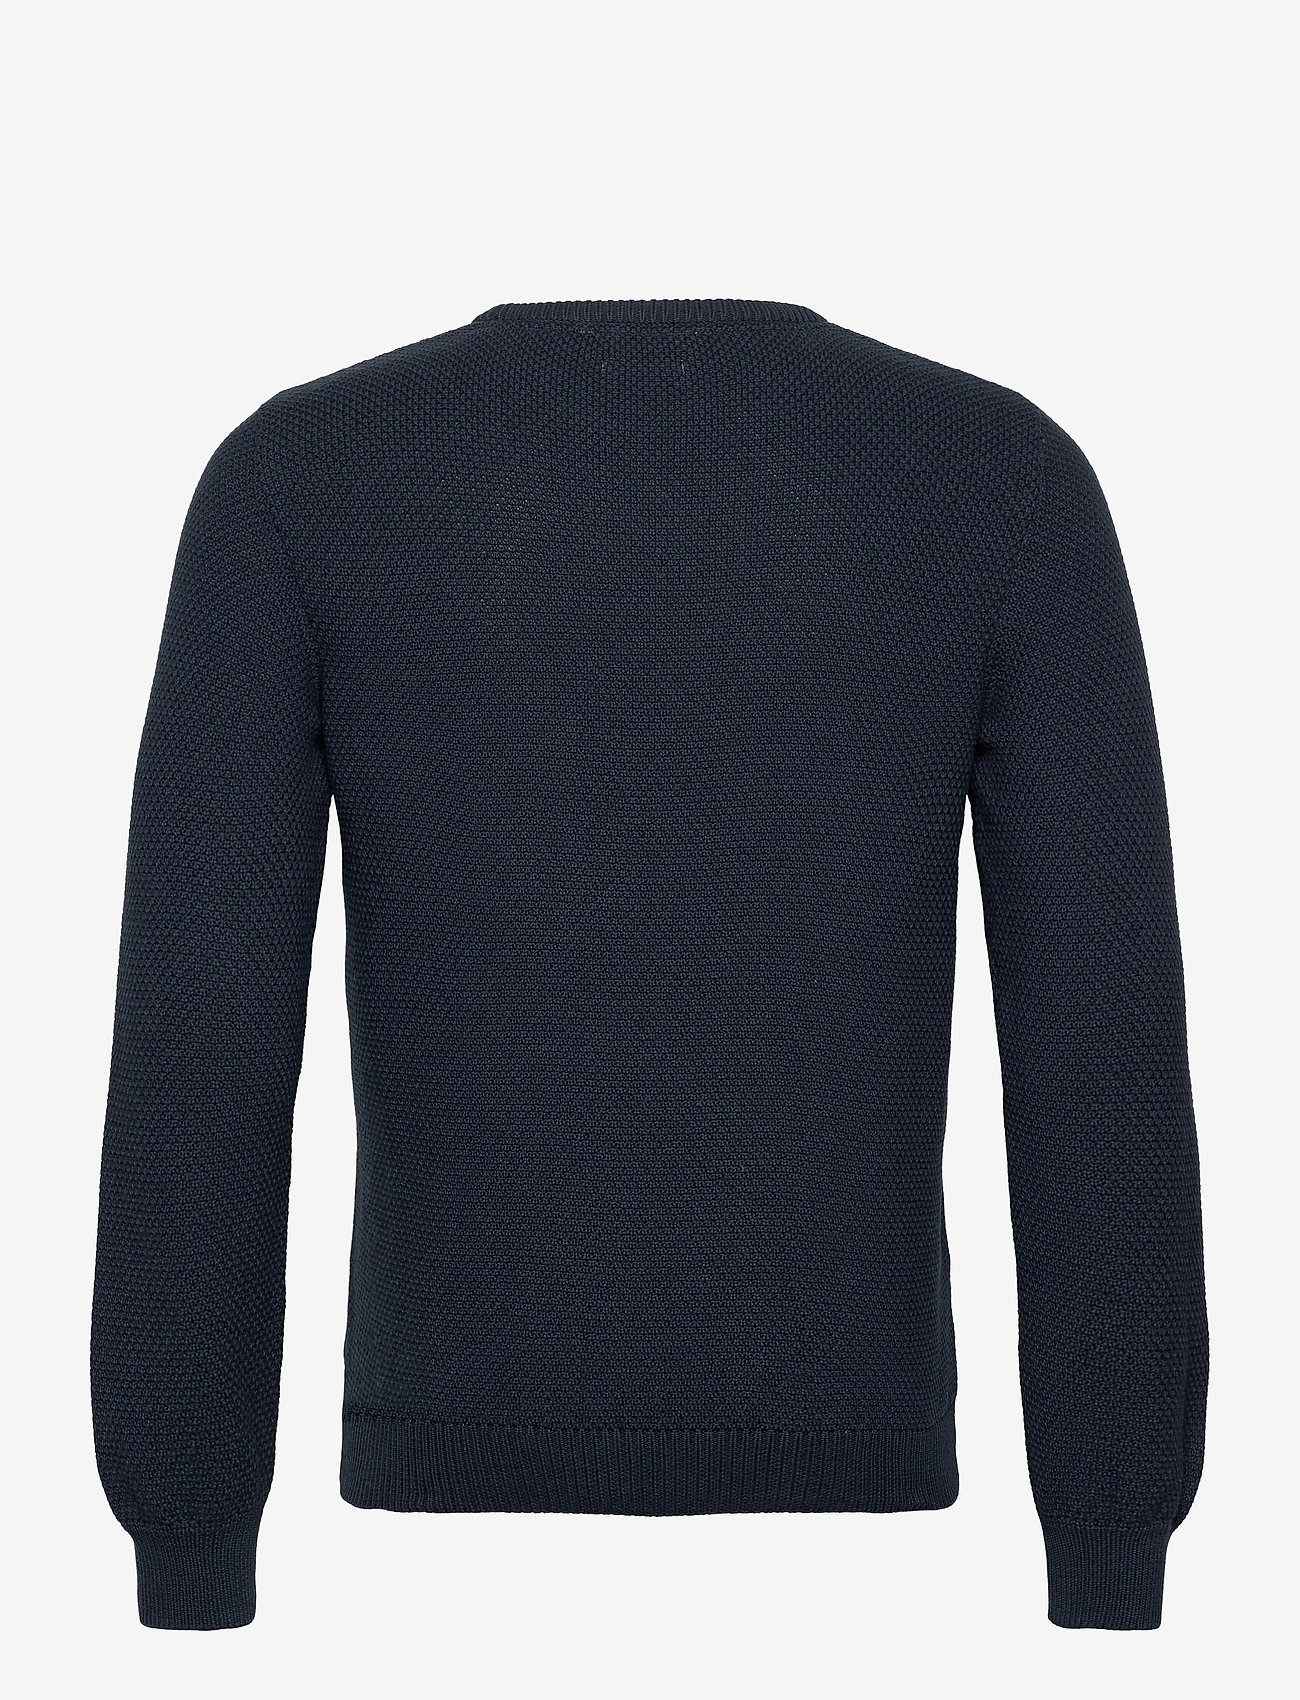 By Garment Makers - The Organic Waffle Knit - tricots basiques - navy blazer - 1